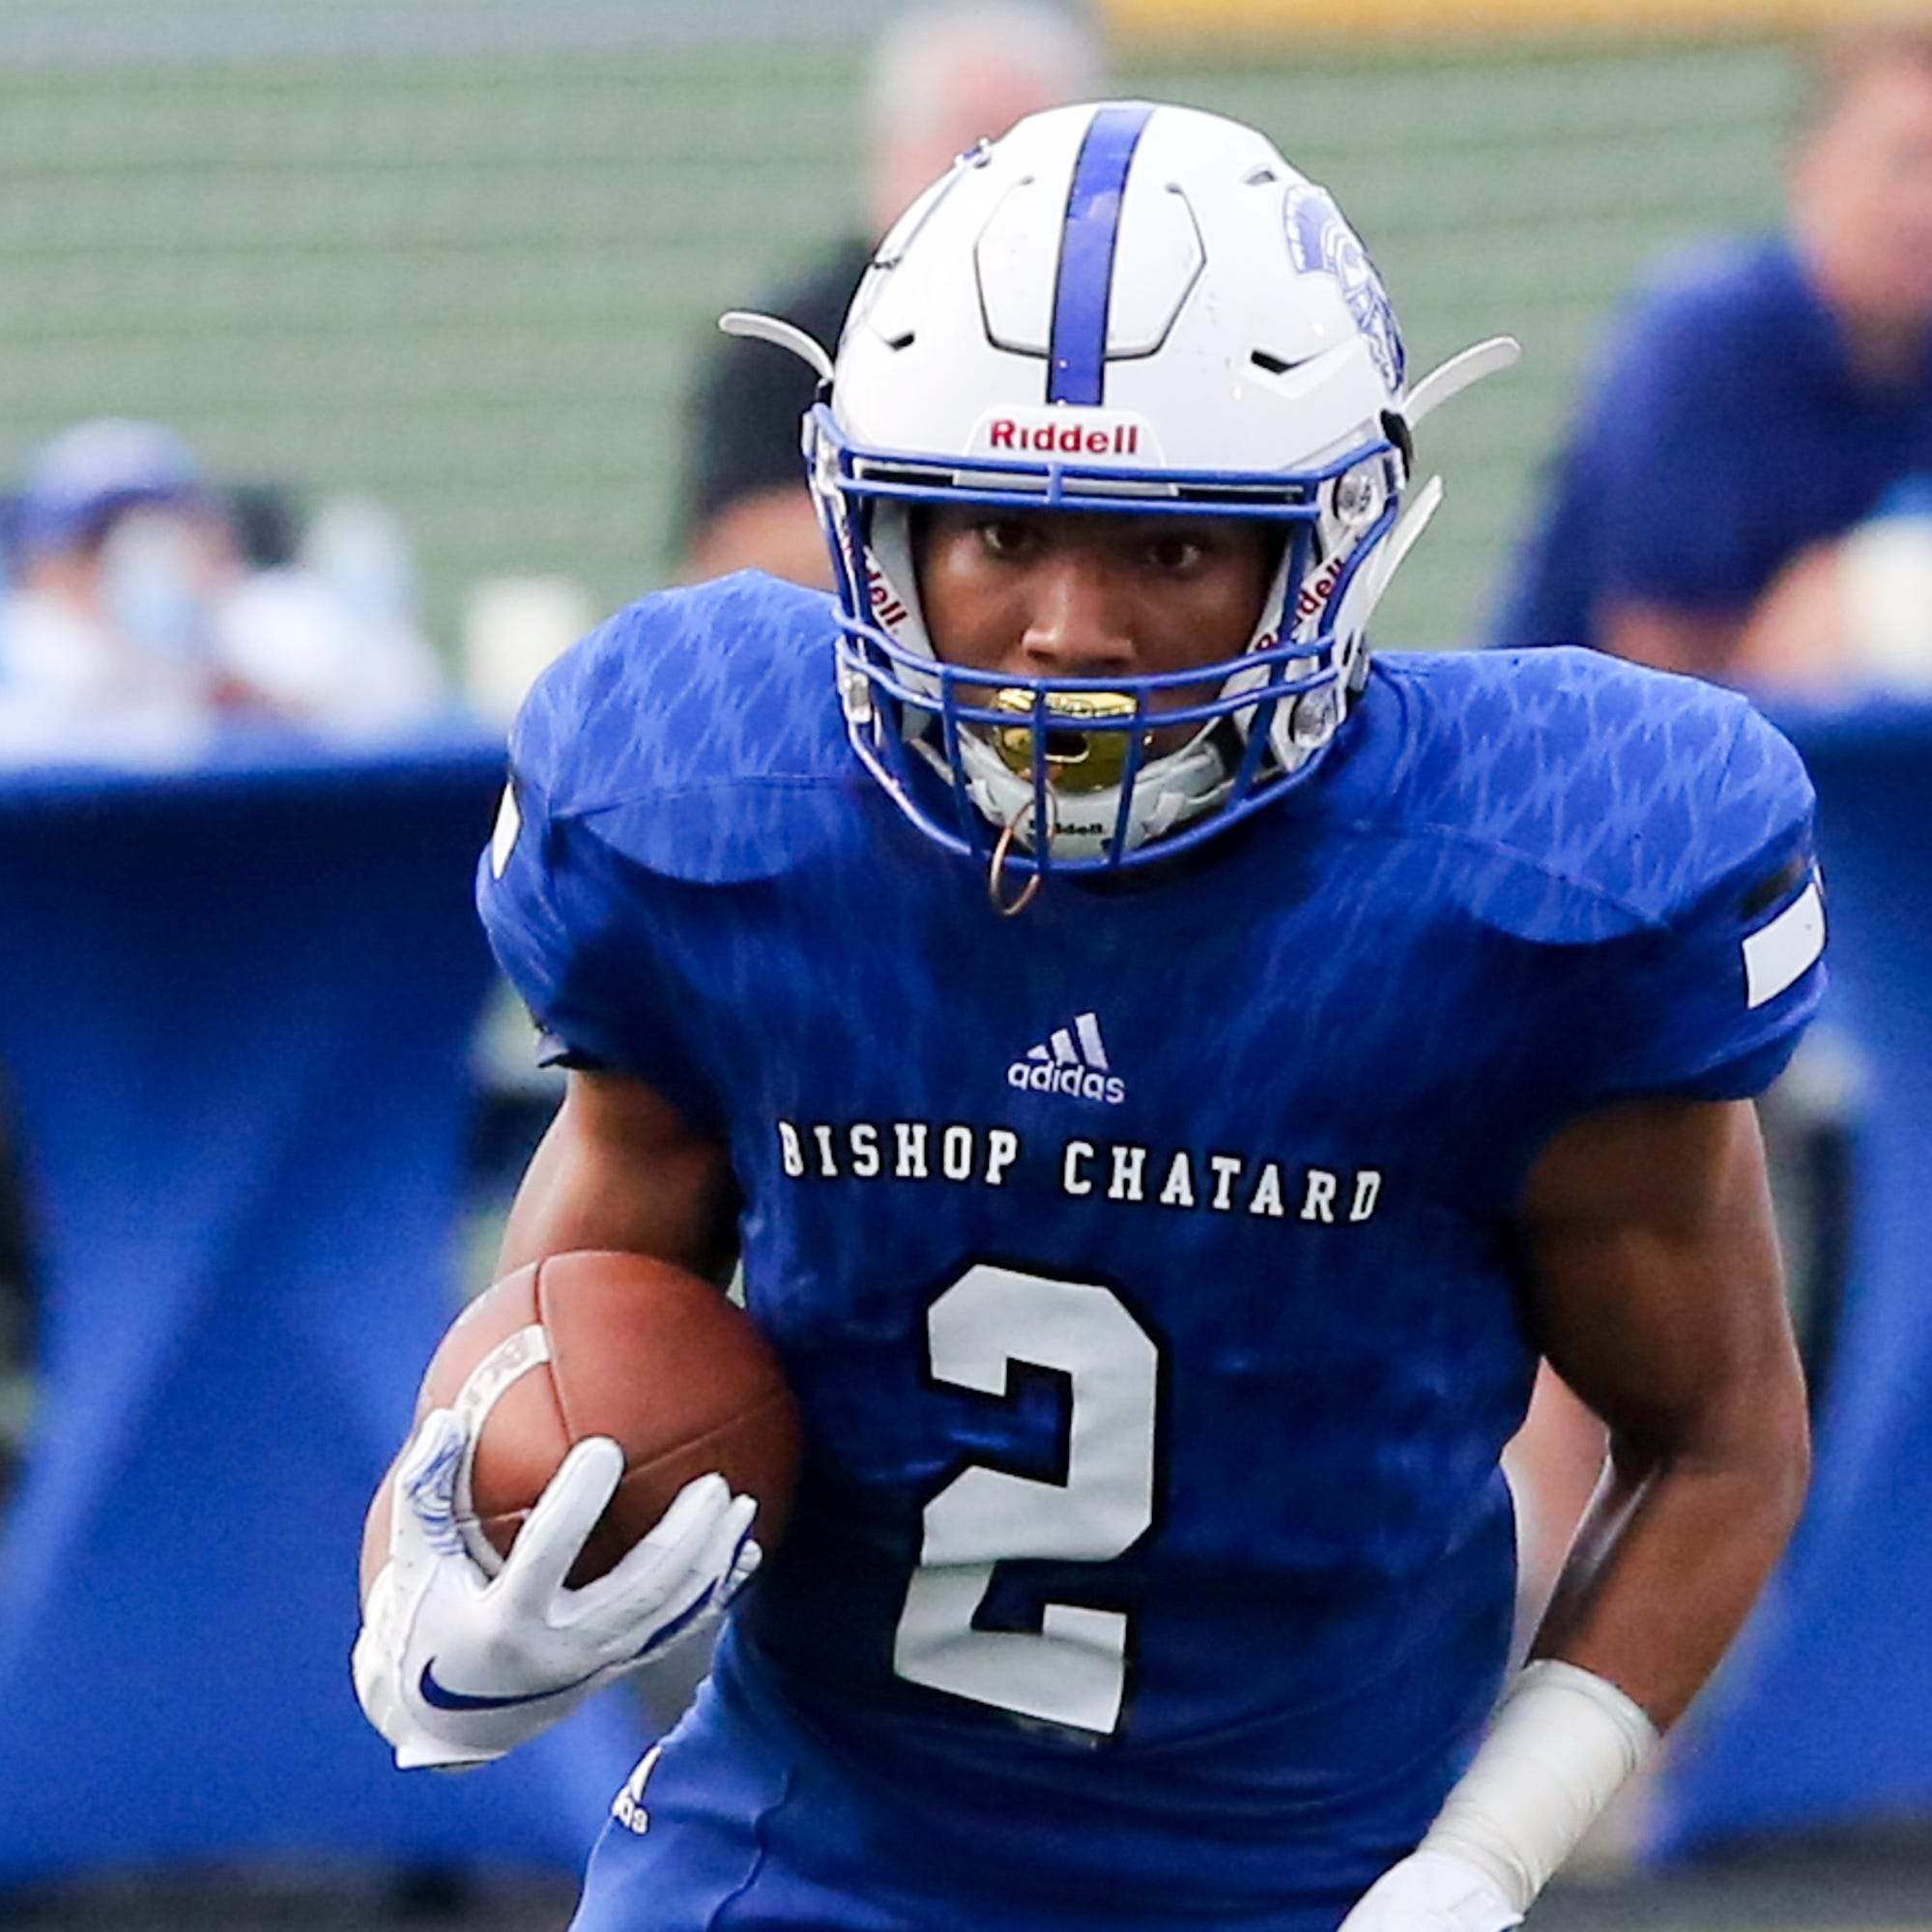 Bishop Chatard's Daylen Taylor scored four times in the Trojans' win over Southport.